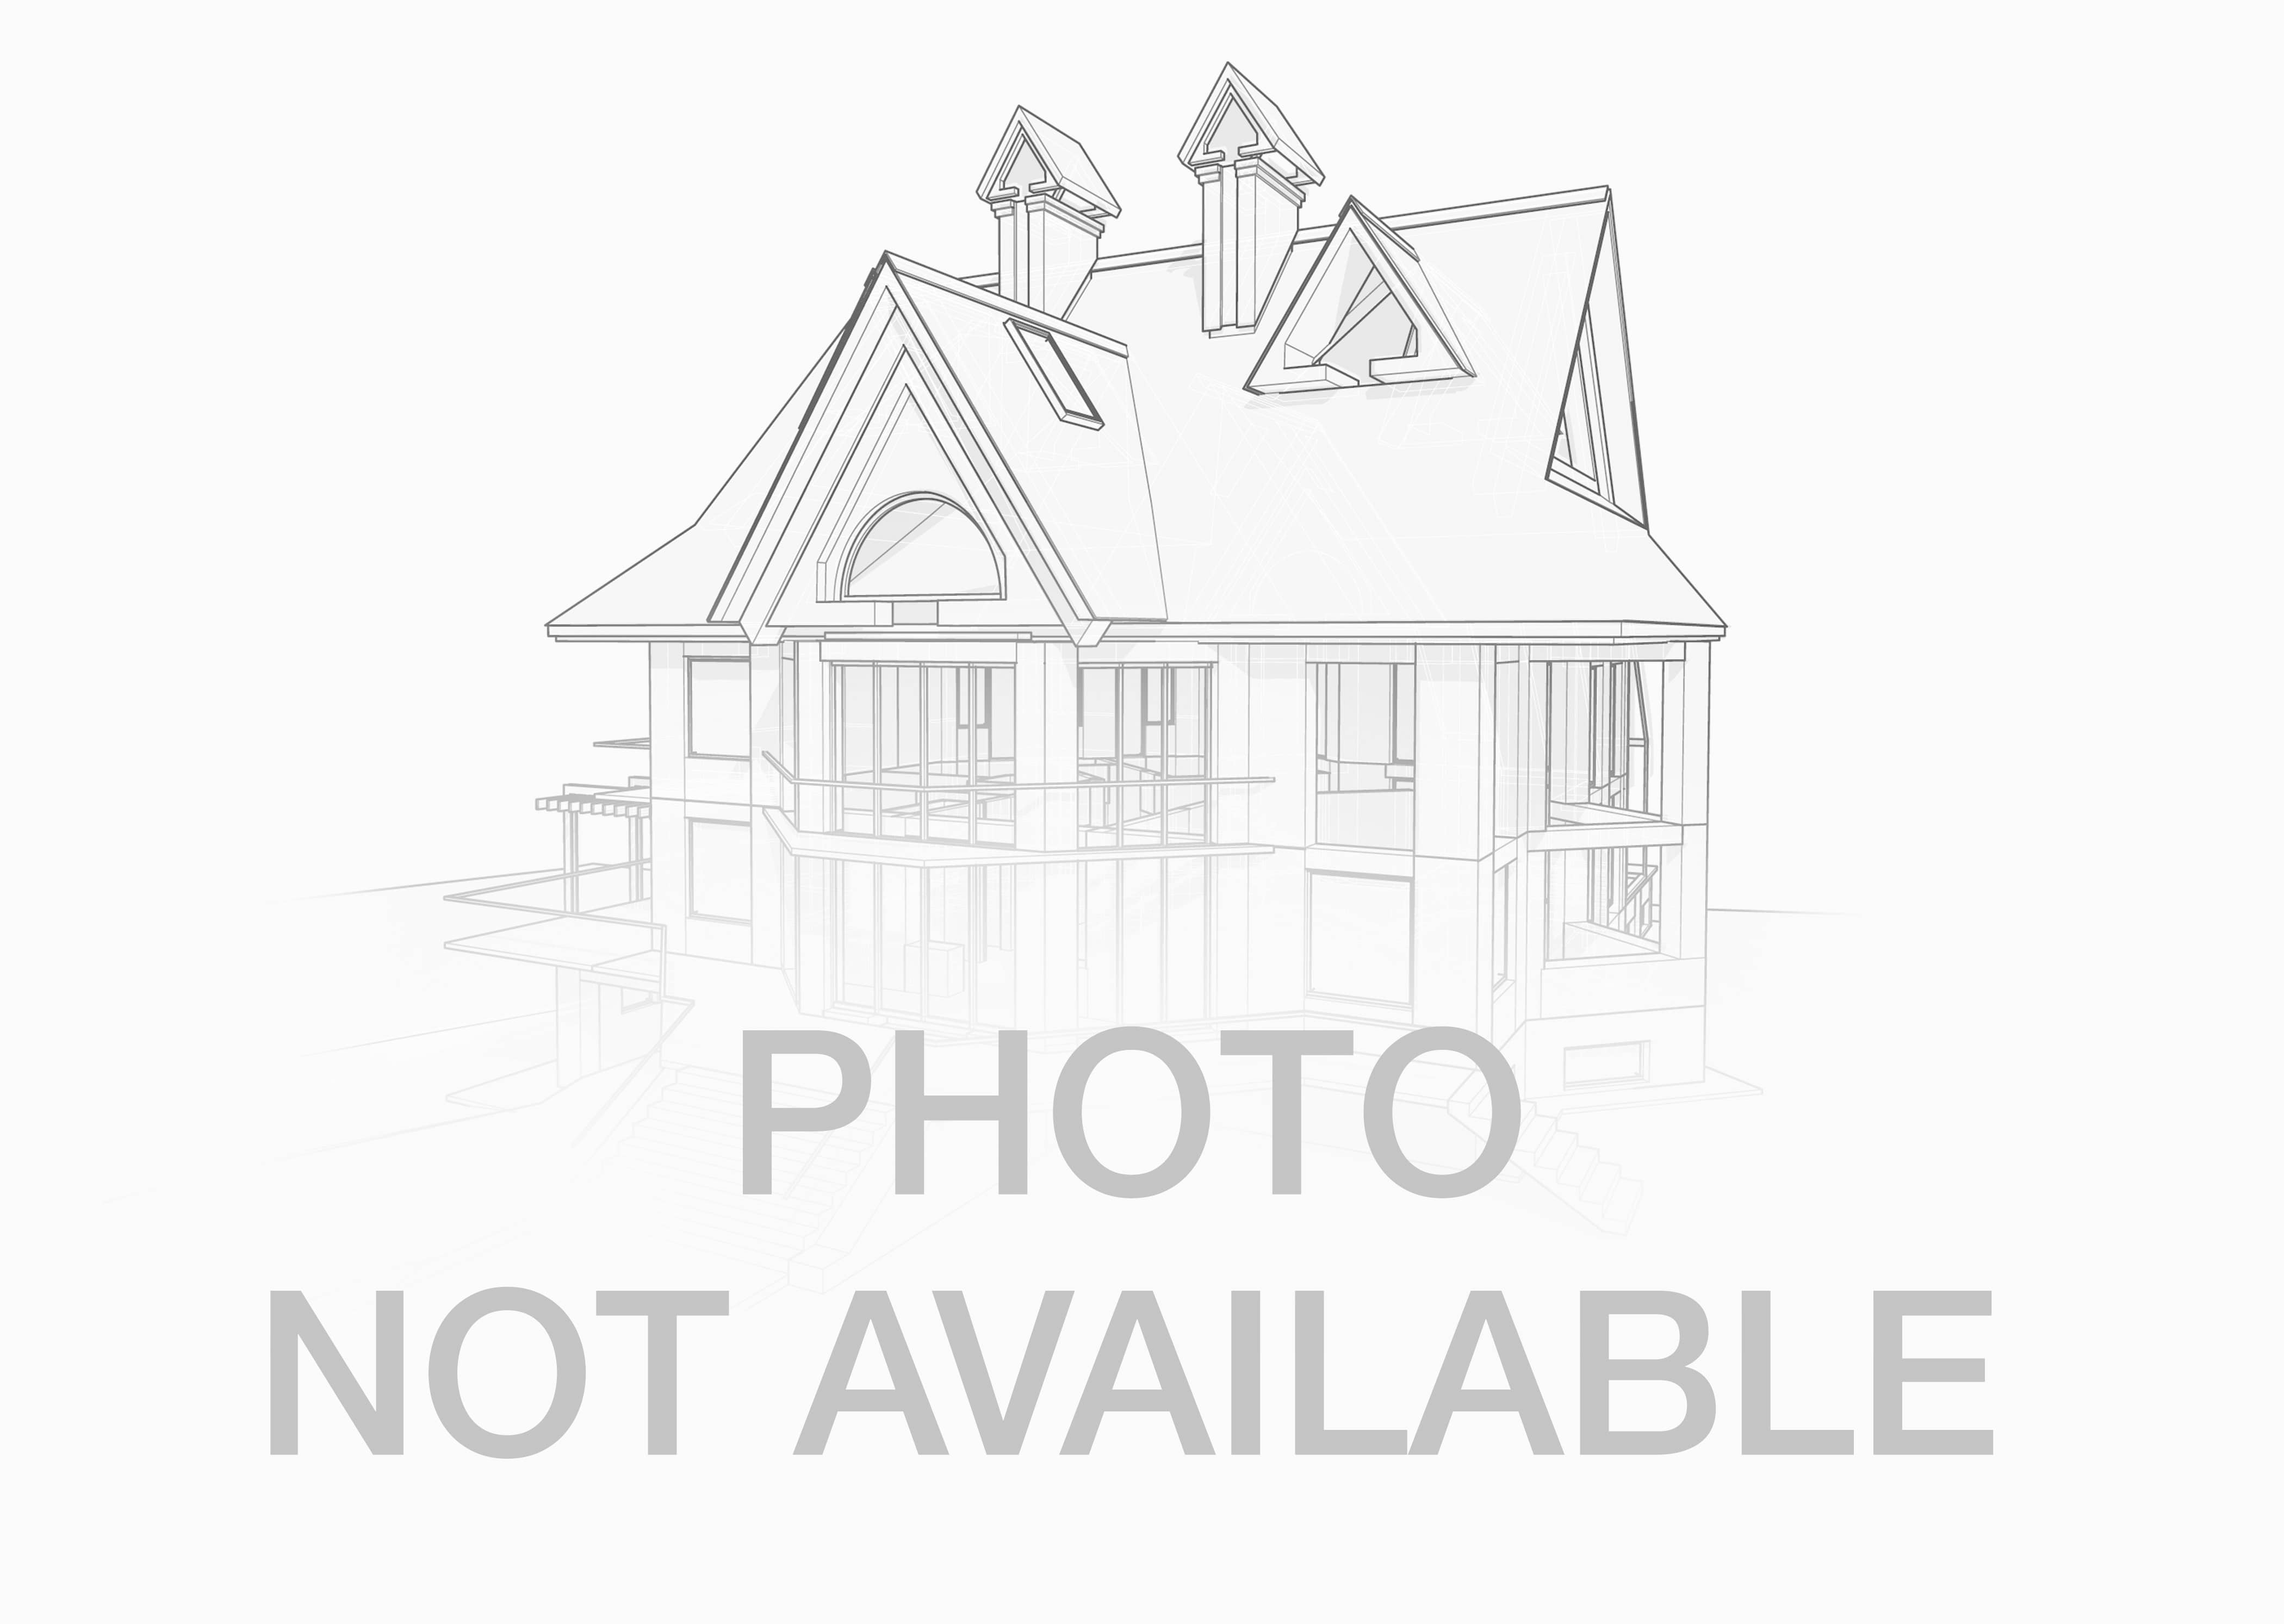 New Listings Homes For Sale Harford County Md